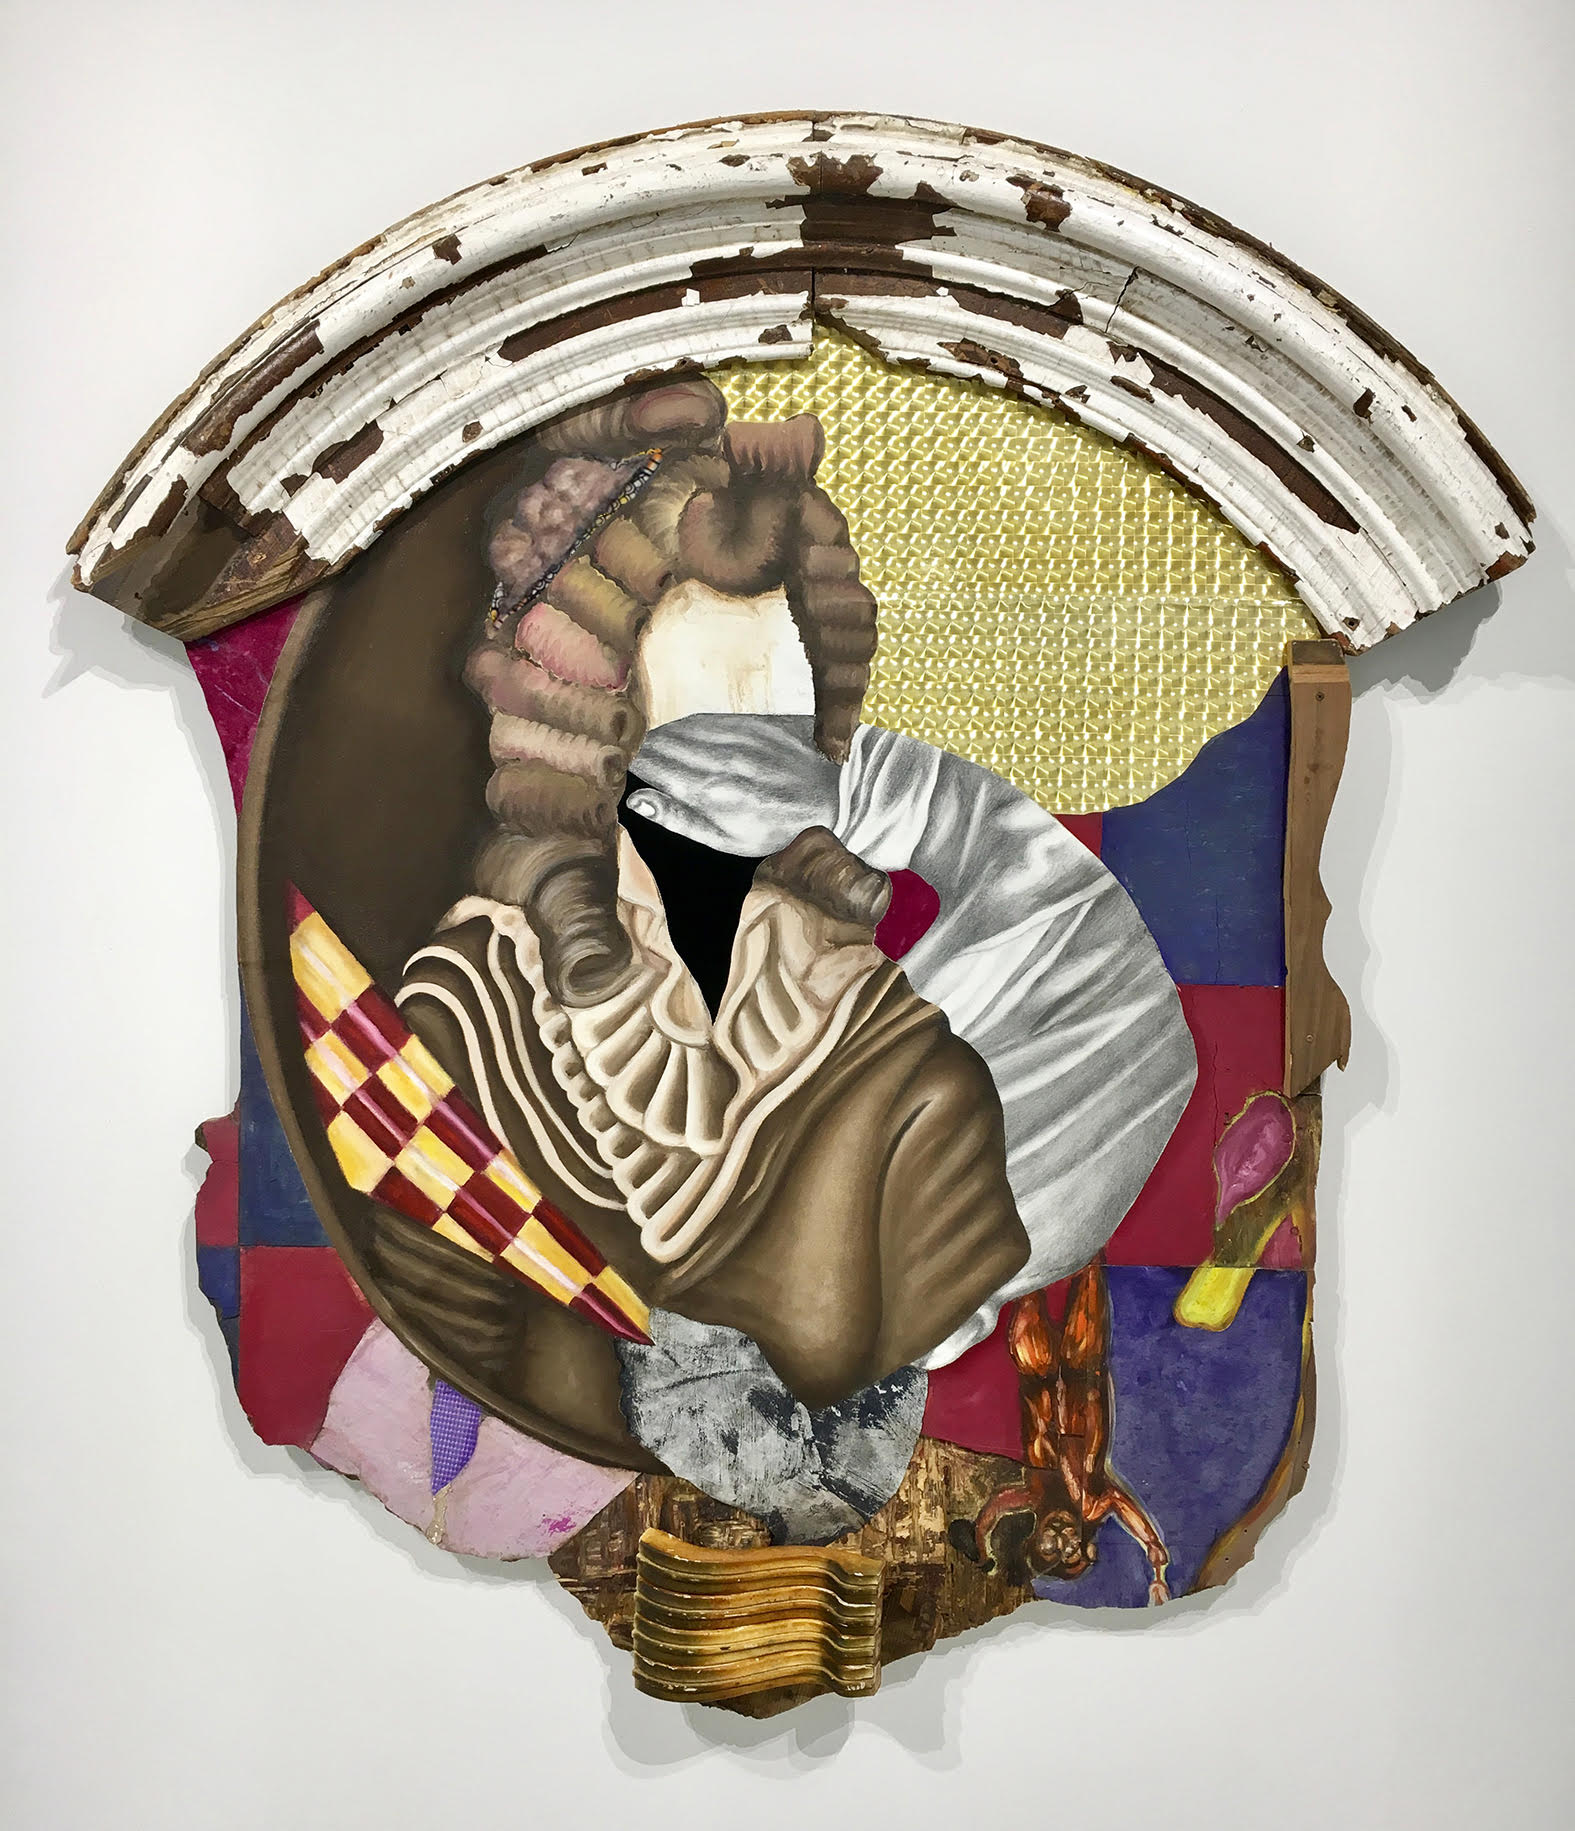 """Double Jointed,"" 2017, oil, graphite, tiles, wood, fabric, and mixed media, 67 x 60 x 5 inches.  www.davidshrobe.com"